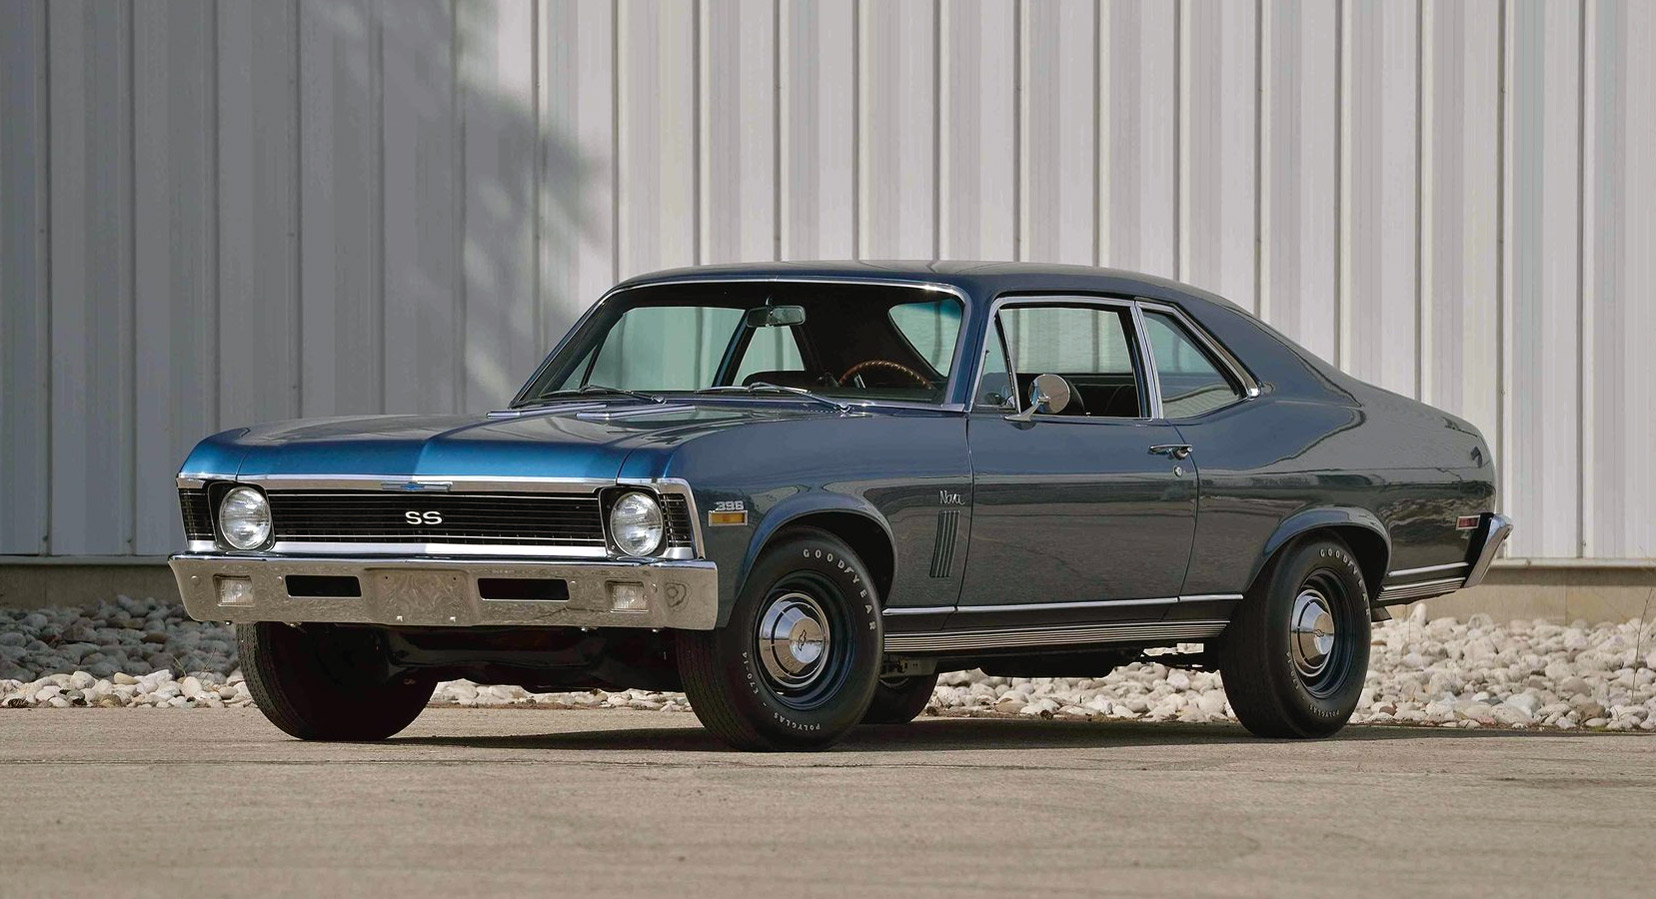 All Chevy chevy 1970 : Classic Car Find of the Week: The 1970 Chevrolet Nova SS - OPUMO